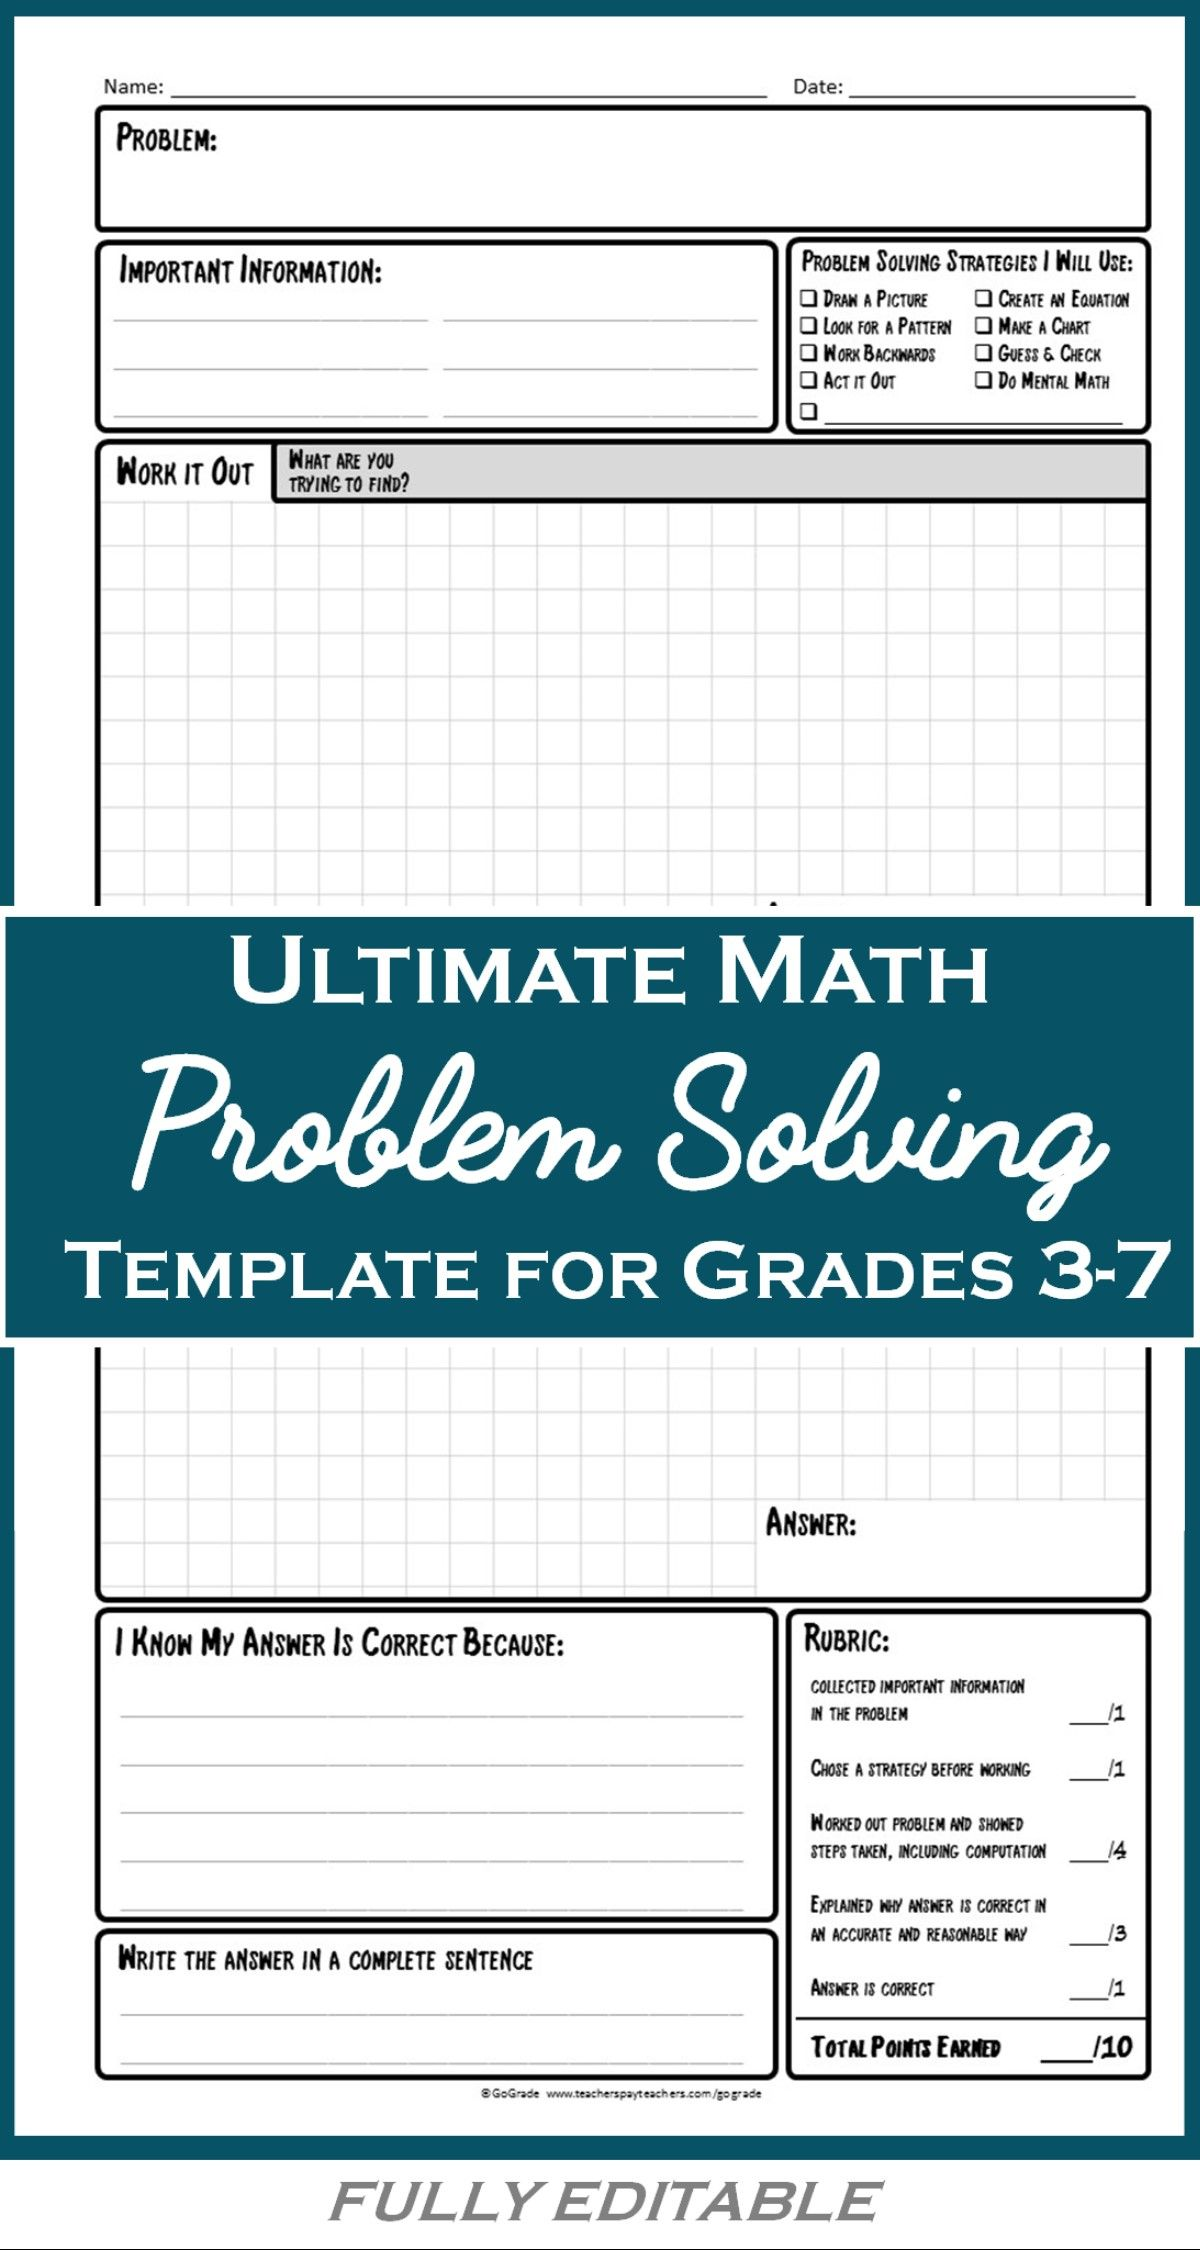 Math Problem Solving Template A Structured Approach To Solving Any Math Problem